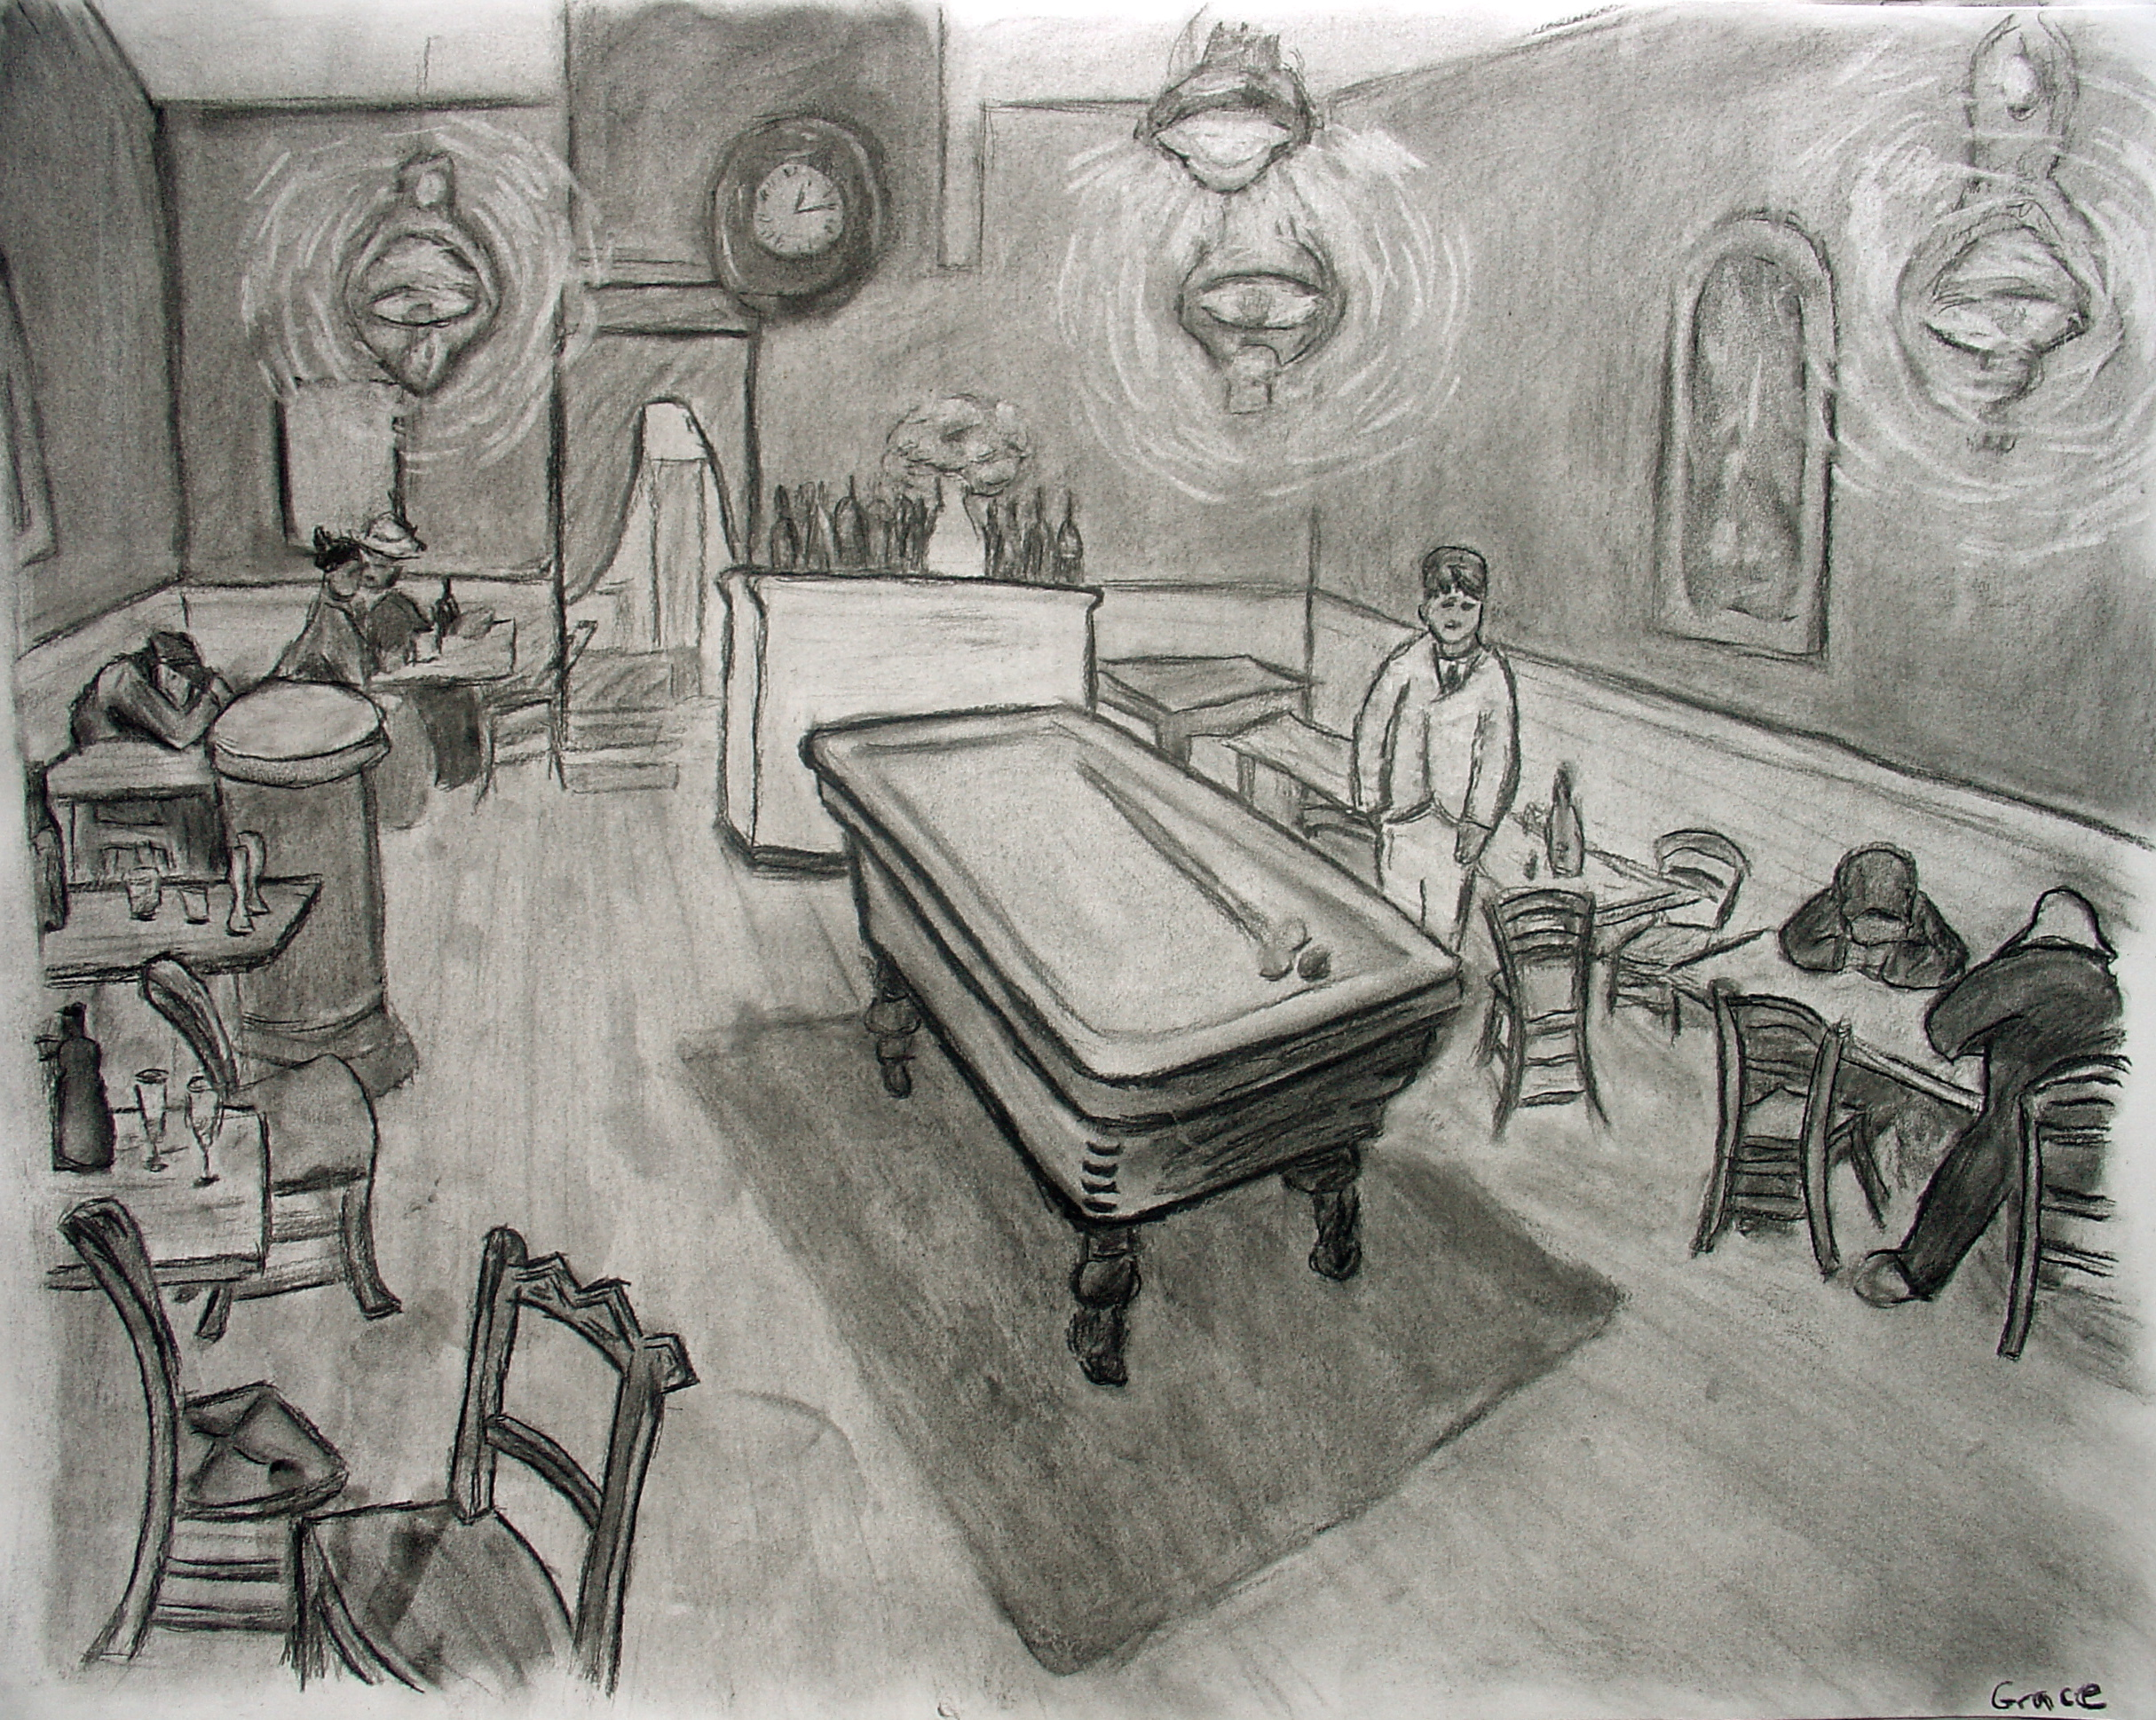 Van Gogh's Night Cafe - Charcoal